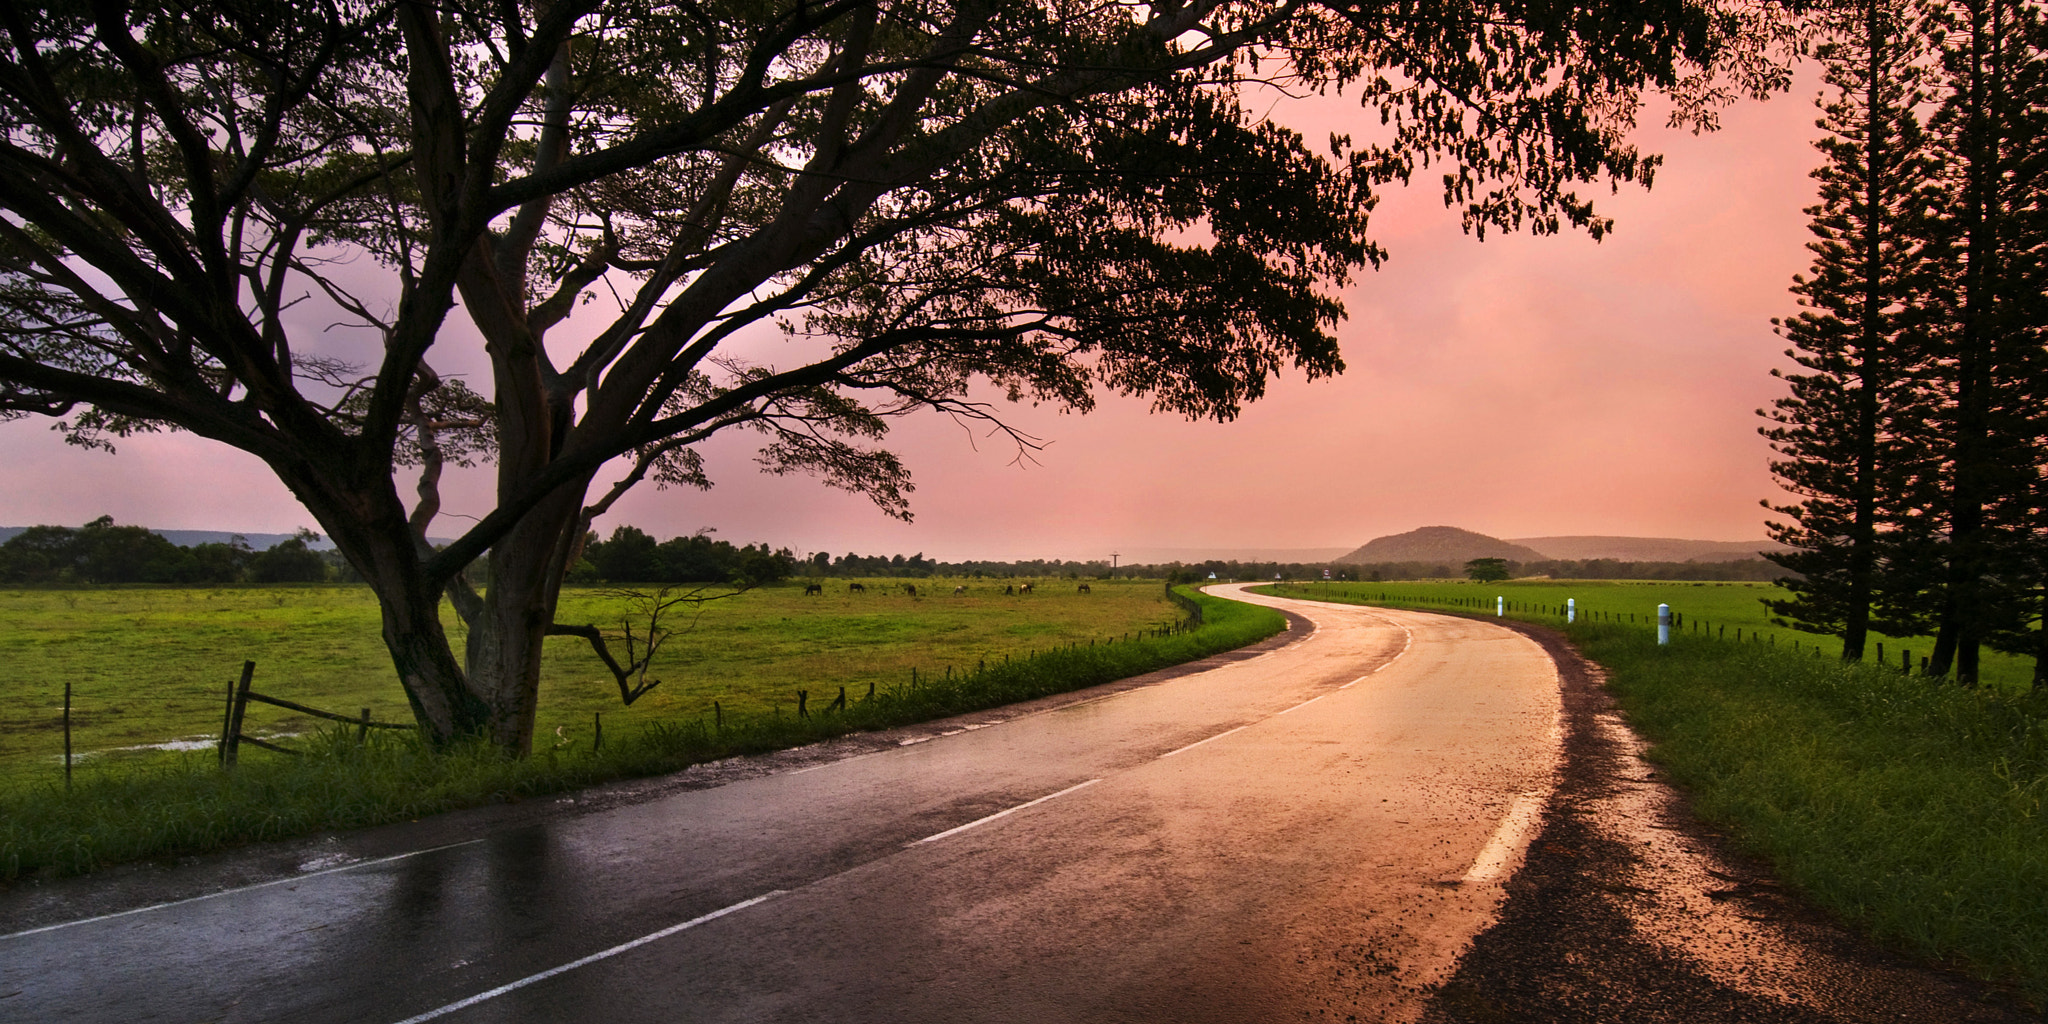 Photograph Poya by Beloon  on 500px